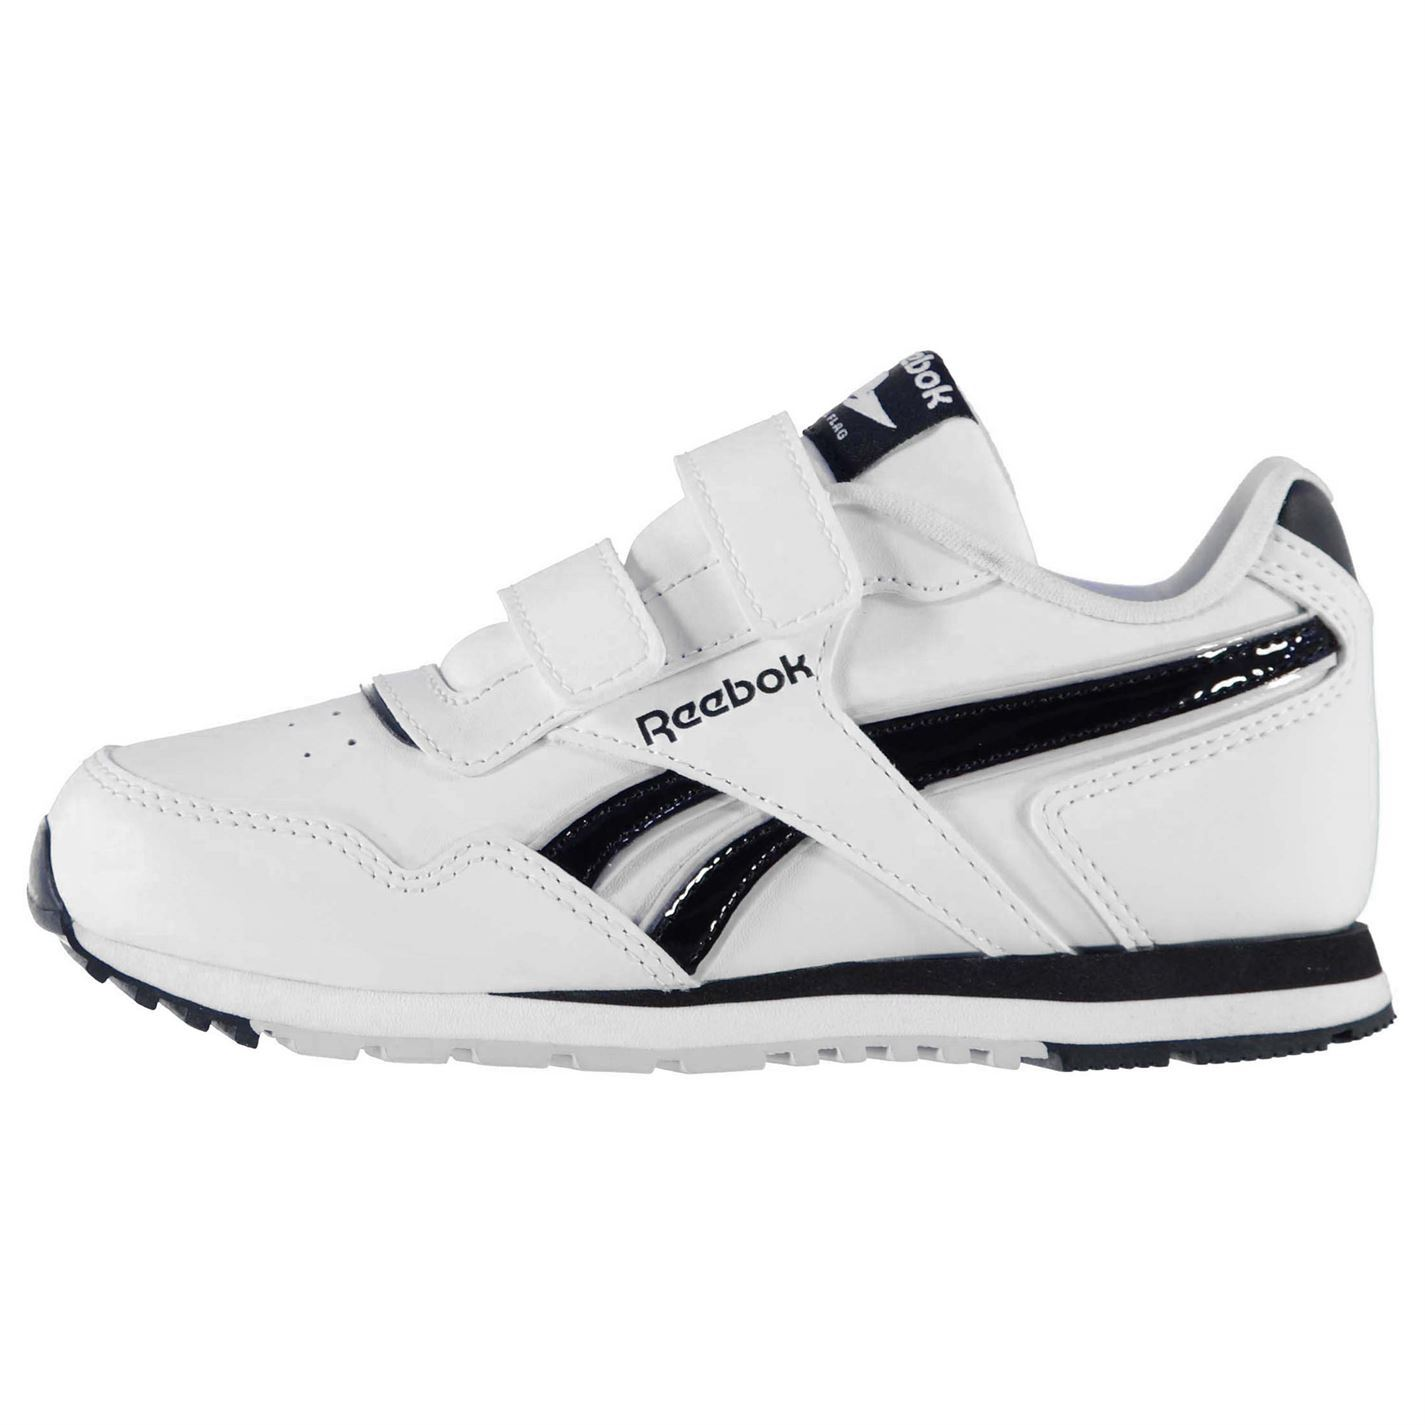 Details about Kids Boys Reebok Classic Jogger RS Infant Trainers Runners Padded Ankle New